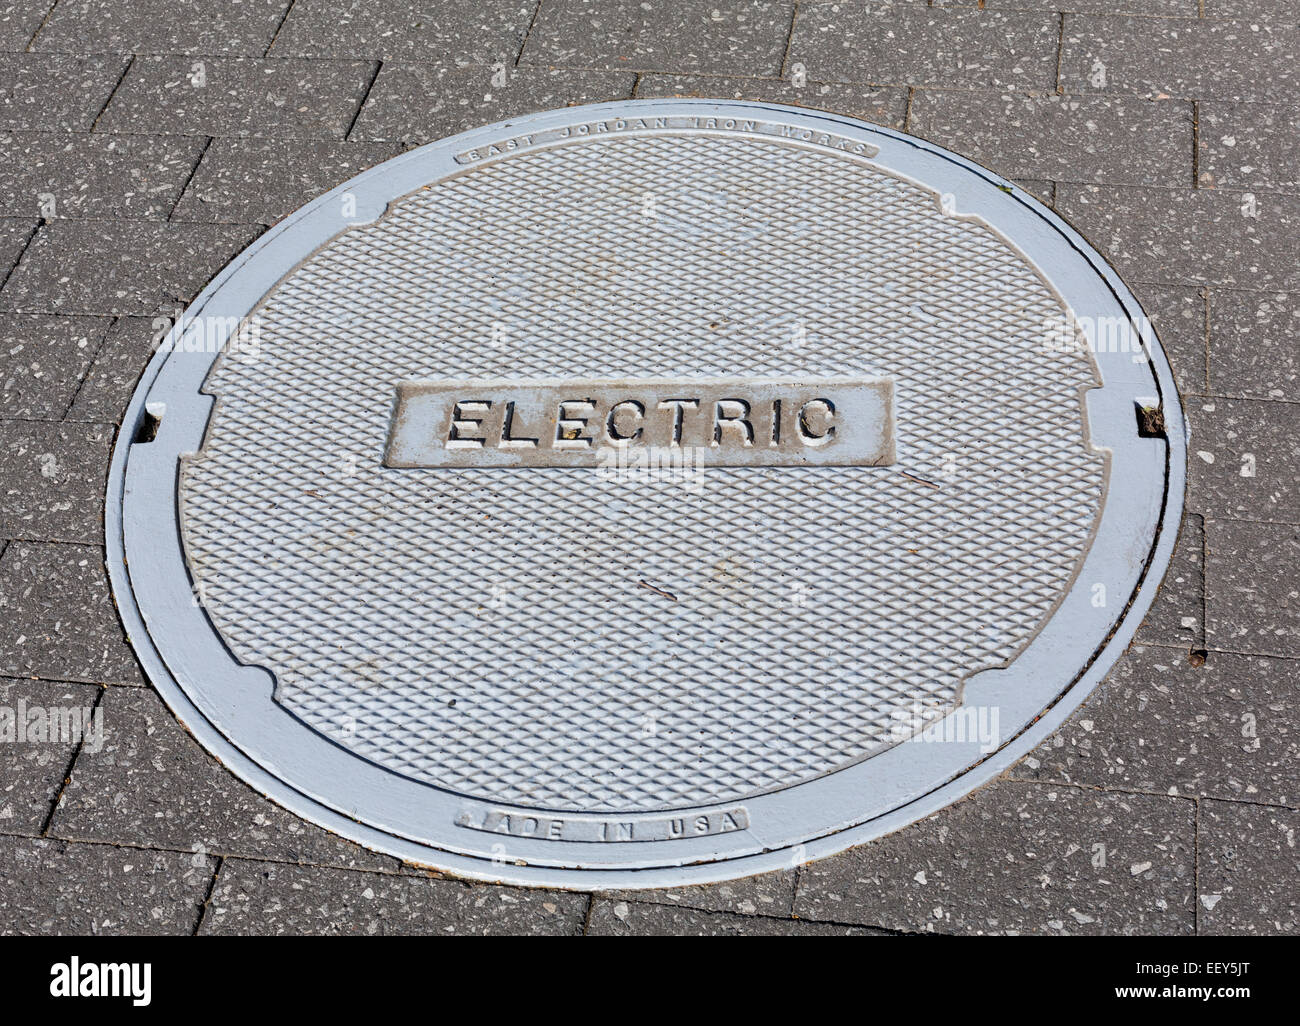 Electric utilities manhole cover - Stock Image